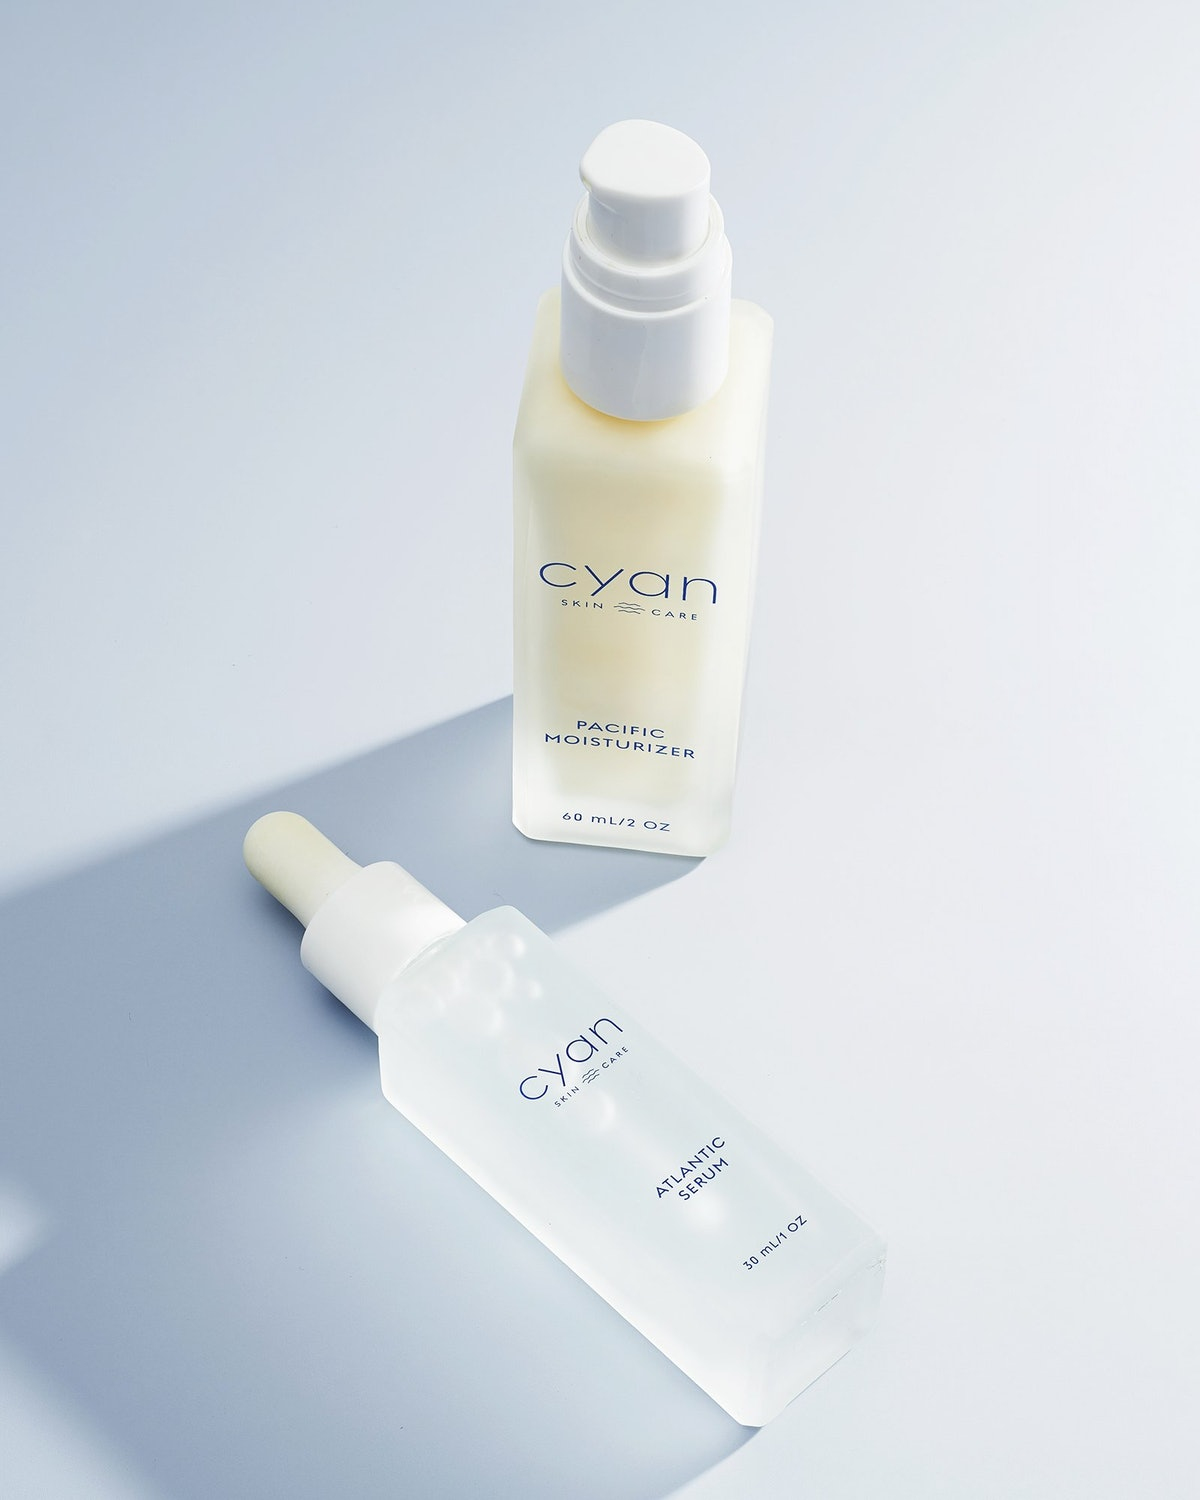 This new skincare brand Cyan wants to clean up the beauty industry, one recyclable bottle at a time....